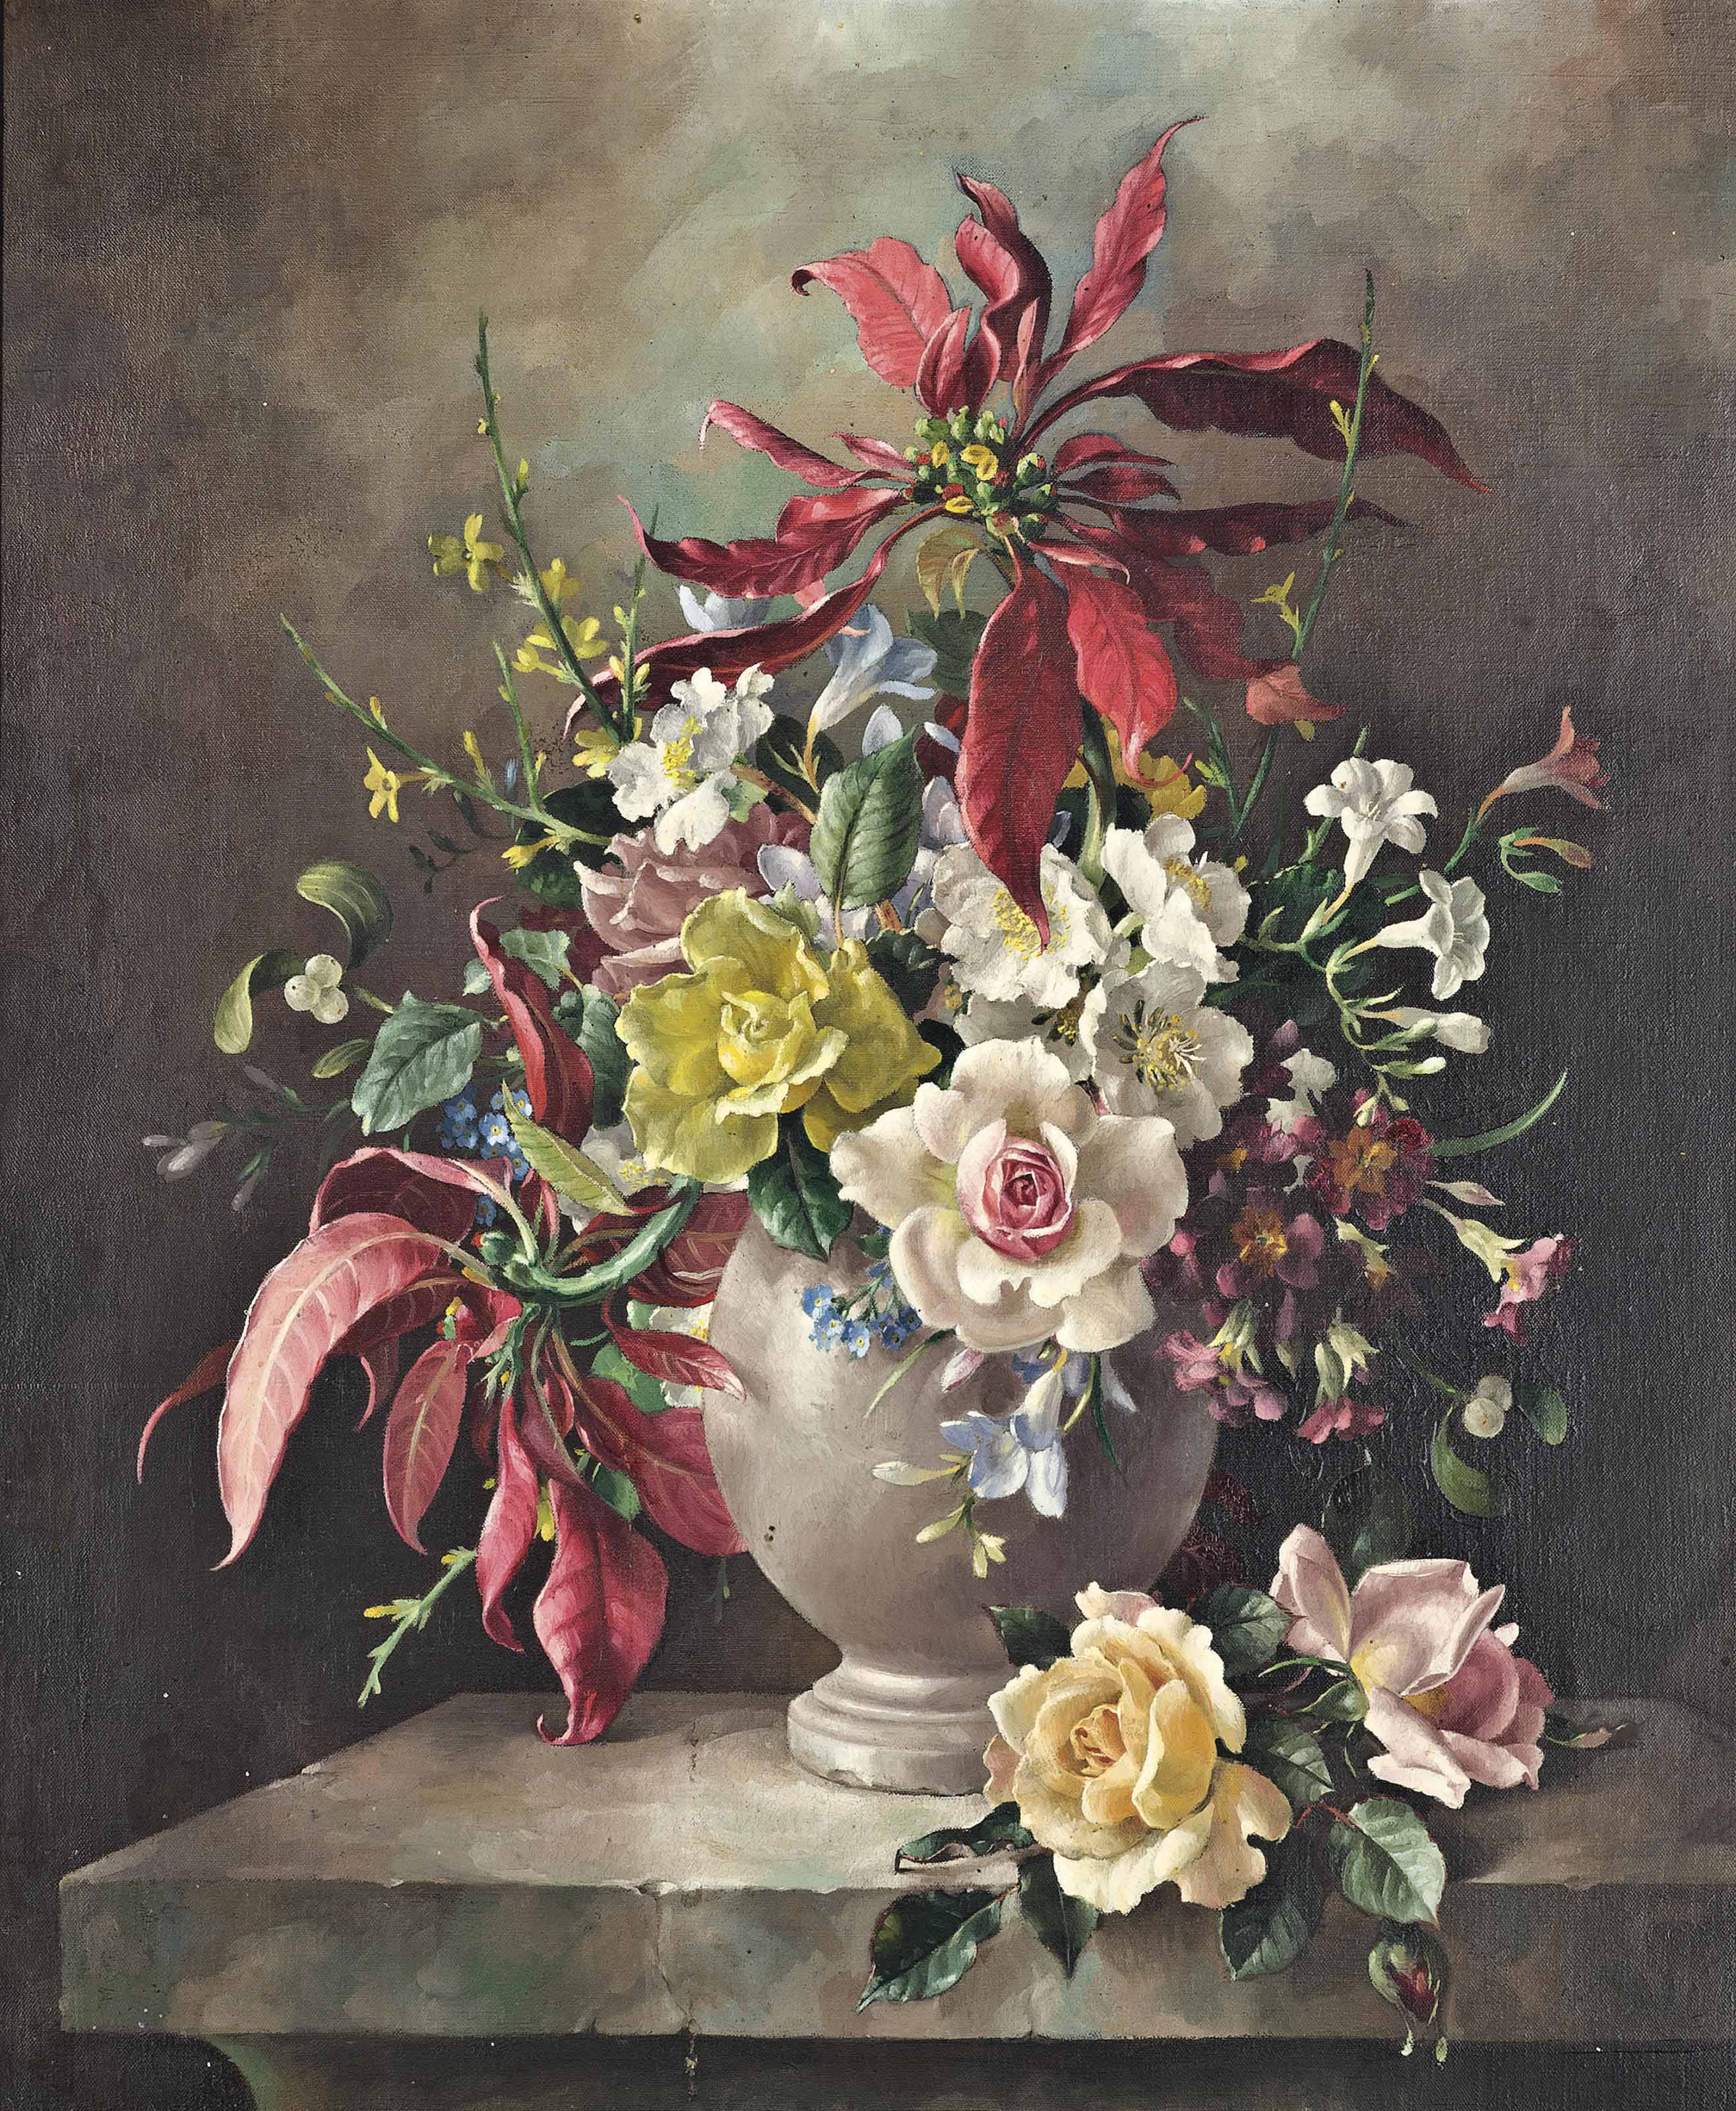 Roses, dog roses, freesias, primroses, forget-me-nots, and poinsettias in an urn